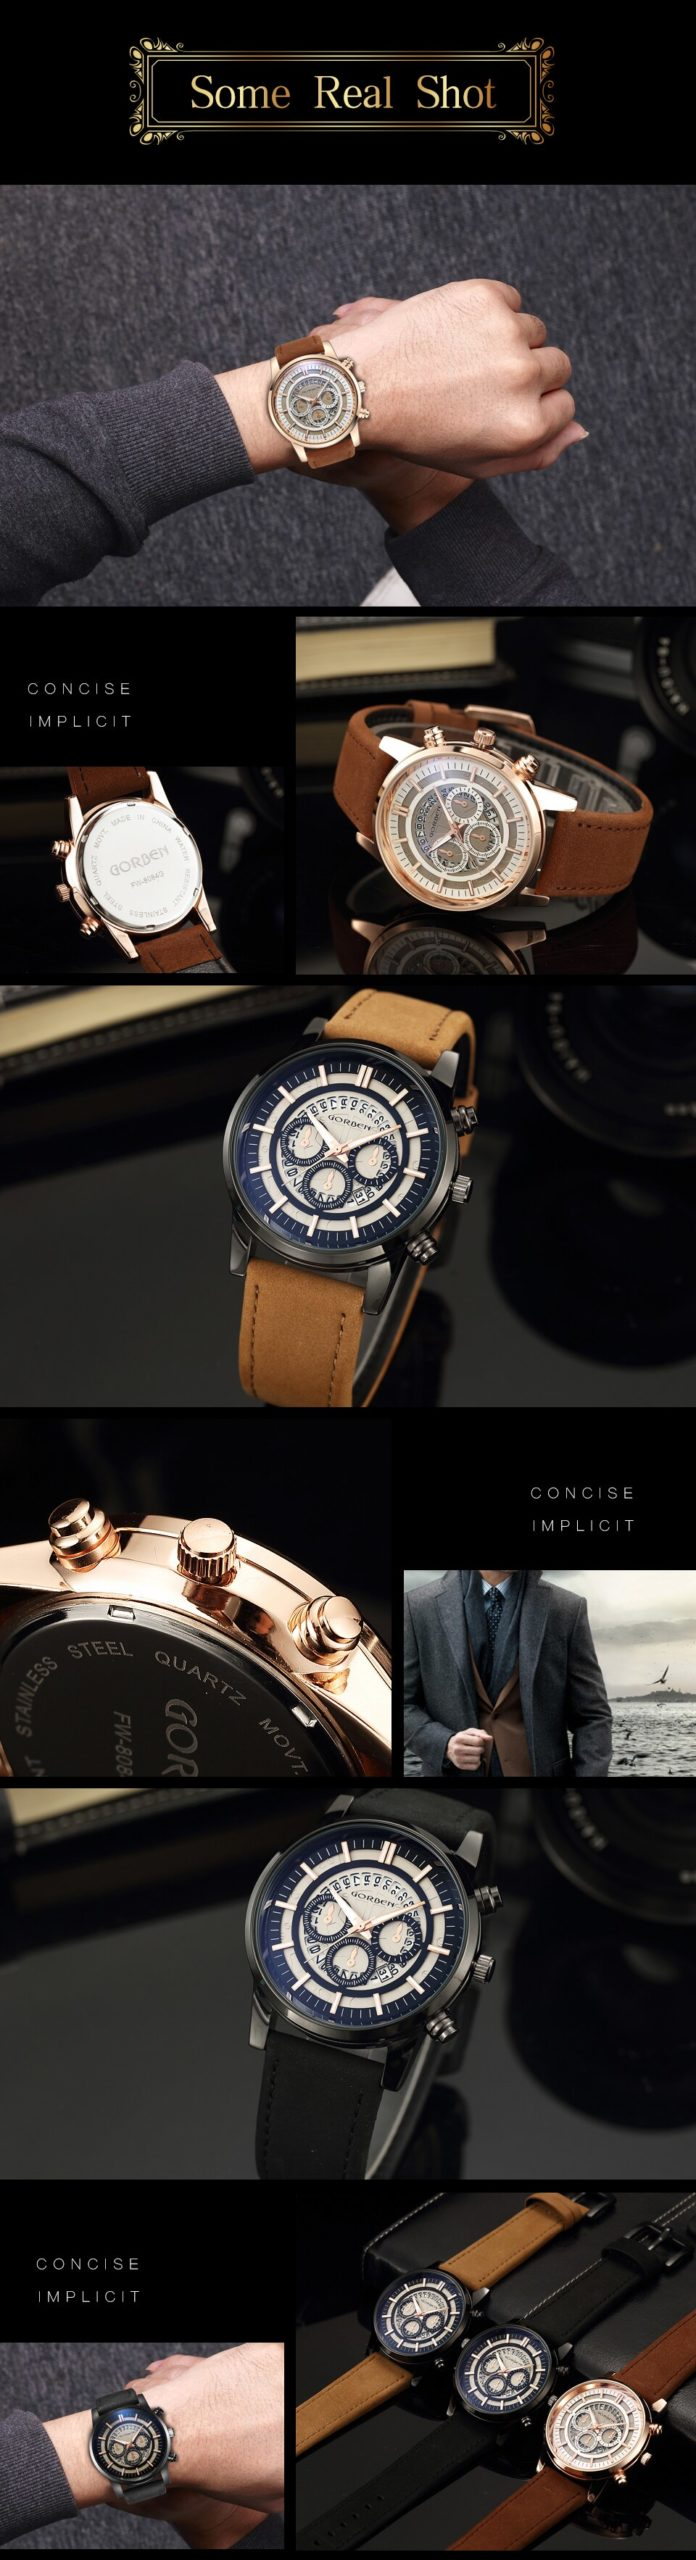 GORBEN Watch Men Creative Rotating Date Numbers Decorative Small Dials Quartz Wrist Watches Fashion Leather Strap Male Bracelet